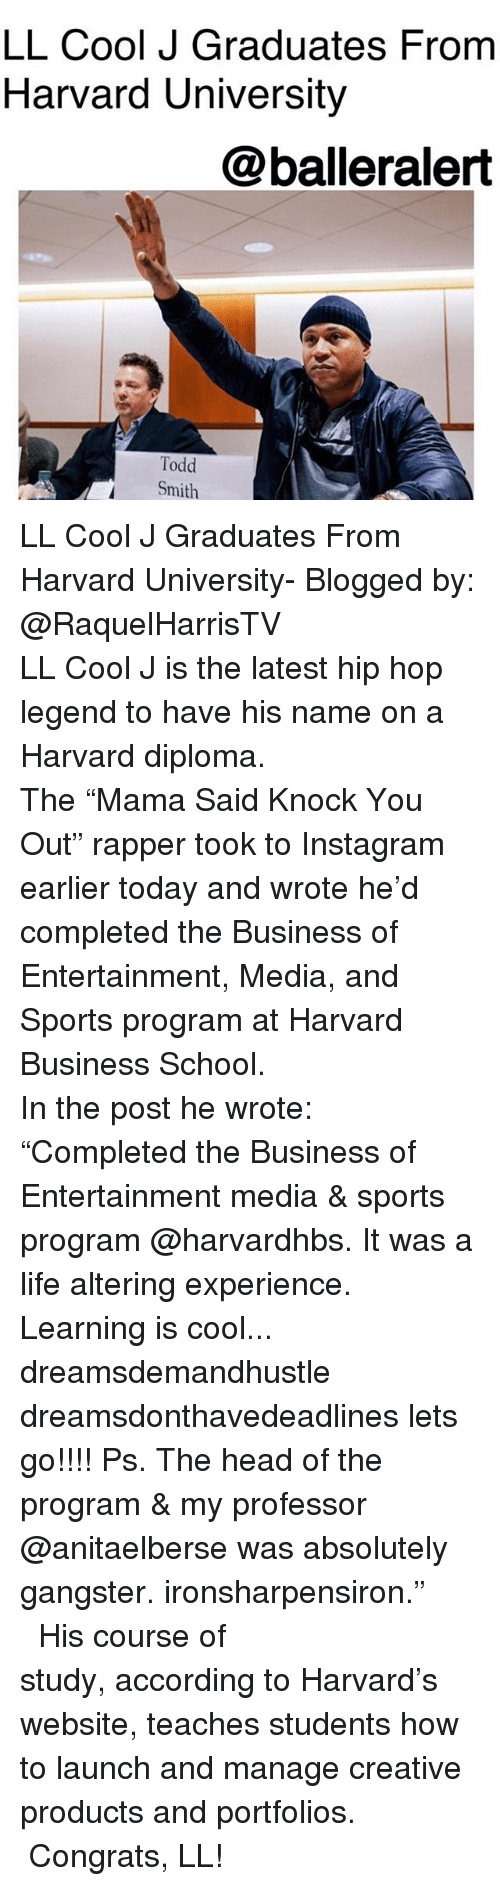 """Head, Instagram, and Life: LL Cool J Graduates From  Harvard University  @balleralert  Todd  Smith LL Cool J Graduates From Harvard University- Blogged by: @RaquelHarrisTV ⠀⠀⠀⠀⠀⠀⠀⠀⠀ ⠀⠀⠀⠀⠀⠀⠀⠀⠀ LL Cool J is the latest hip hop legend to have his name on a Harvard diploma. ⠀⠀⠀⠀⠀⠀⠀⠀⠀ ⠀⠀⠀⠀⠀⠀⠀⠀⠀ The """"Mama Said Knock You Out"""" rapper took to Instagram earlier today and wrote he'd completed the Business of Entertainment, Media, and Sports program at Harvard Business School. ⠀⠀⠀⠀⠀⠀⠀⠀⠀ ⠀⠀⠀⠀⠀⠀⠀⠀⠀ In the post he wrote: """"Completed the Business of Entertainment media & sports program @harvardhbs. It was a life altering experience. Learning is cool... dreamsdemandhustle dreamsdonthavedeadlines lets go!!!! Ps. The head of the program & my professor @anitaelberse was absolutely gangster. ironsharpensiron."""" ⠀⠀⠀⠀⠀⠀⠀⠀⠀ ⠀⠀⠀⠀⠀⠀⠀⠀⠀ His course of study, according to Harvard's website, teaches students how to launch and manage creative products and portfolios. ⠀⠀⠀⠀⠀⠀⠀⠀⠀ ⠀⠀⠀⠀⠀⠀⠀⠀⠀ Congrats, LL!"""